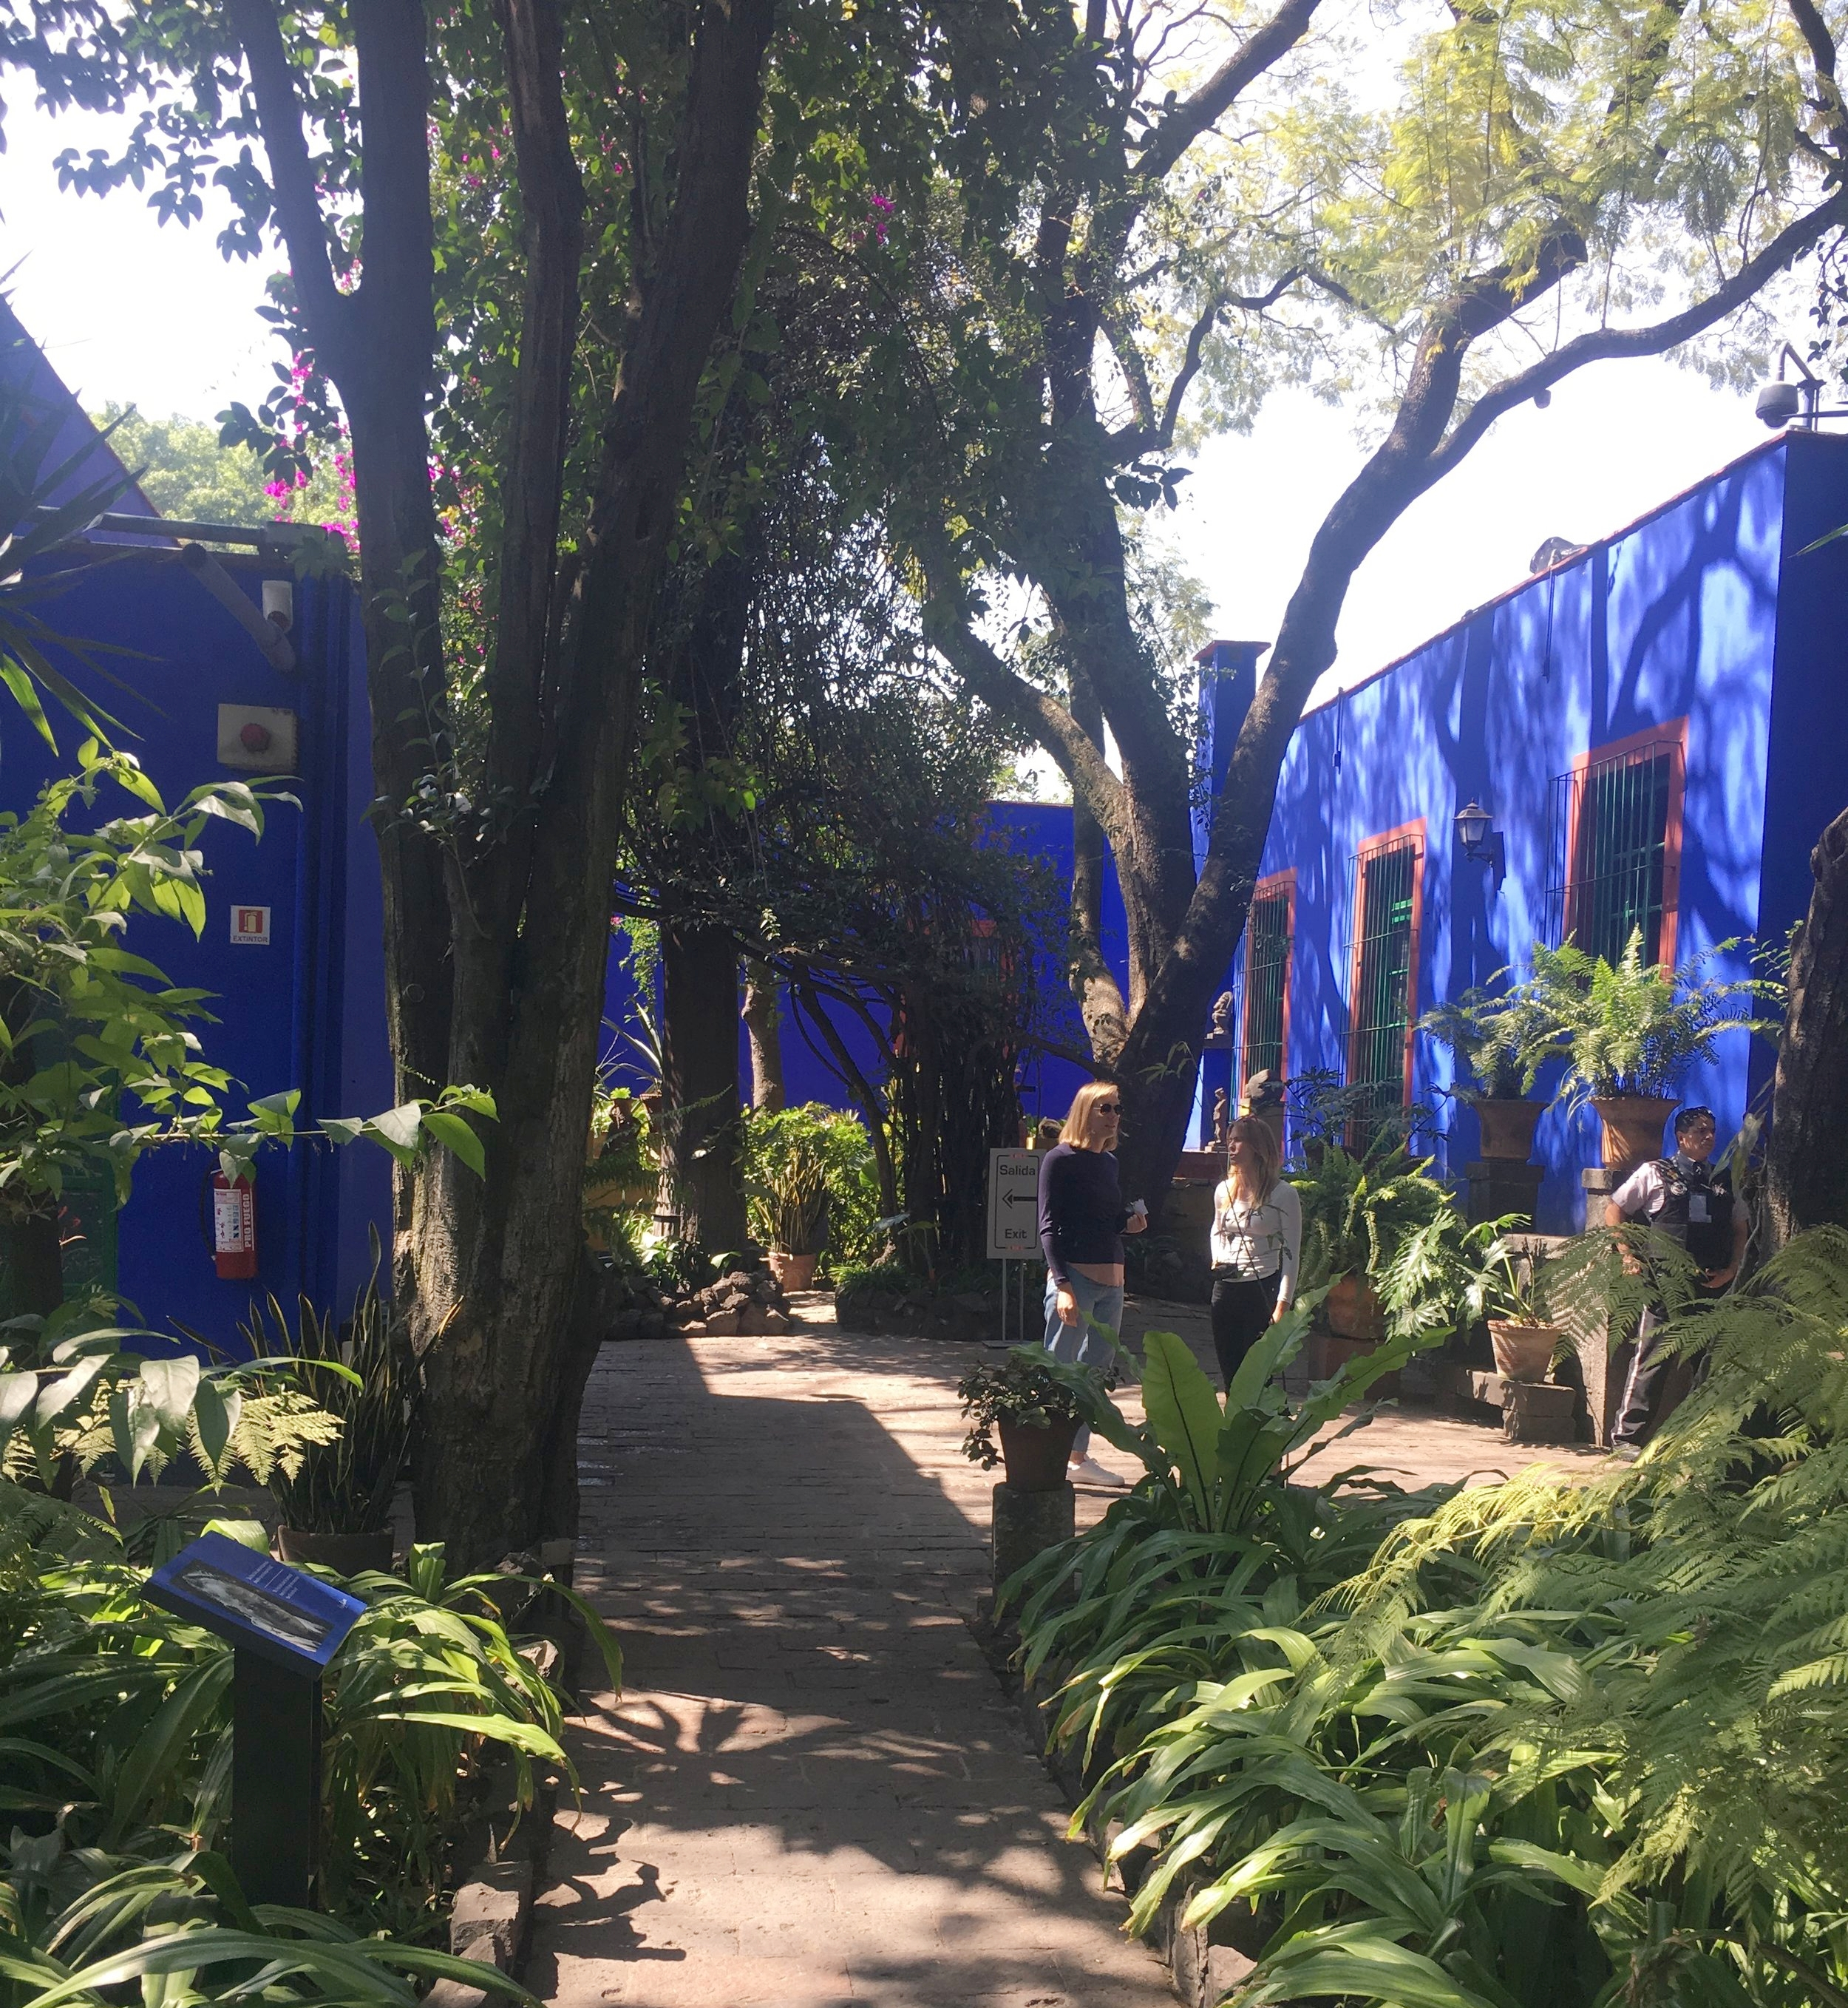 Frida Kahlo's house and museum in Mexico City.